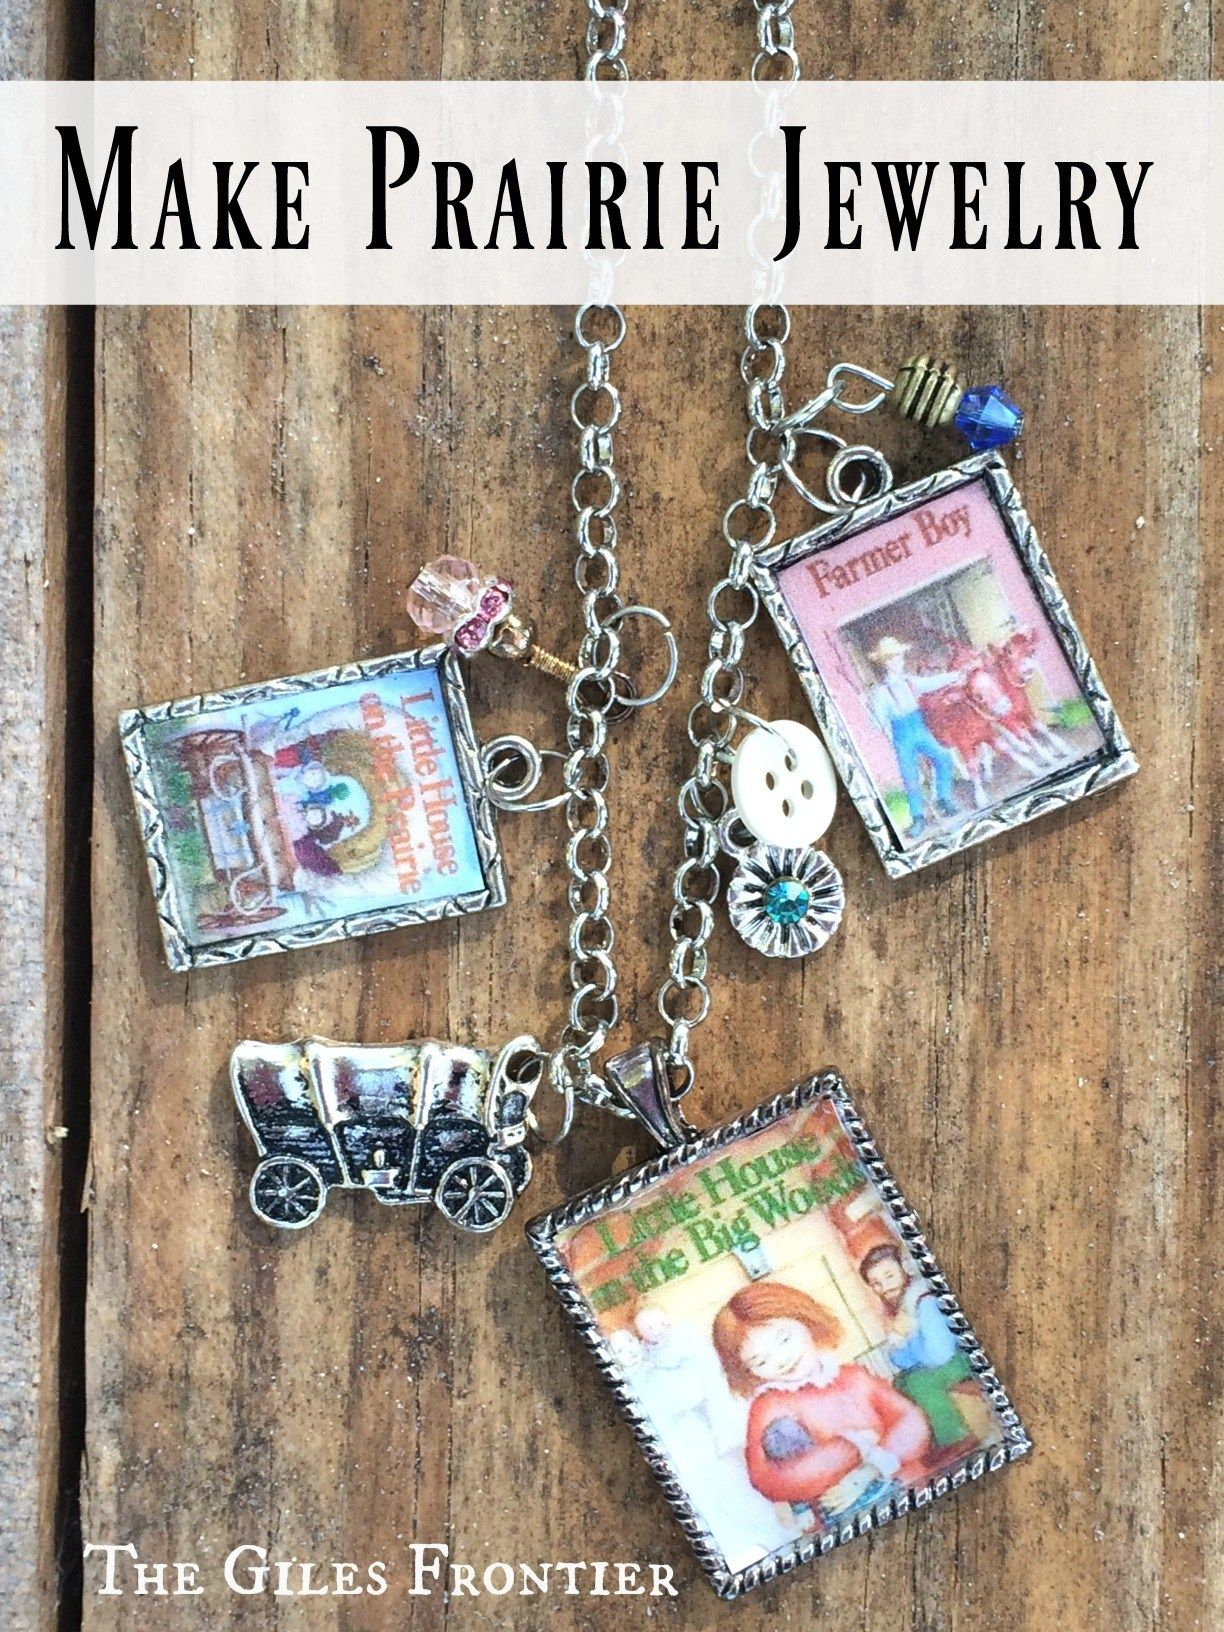 Making Jewelry With Little House On The Prairie